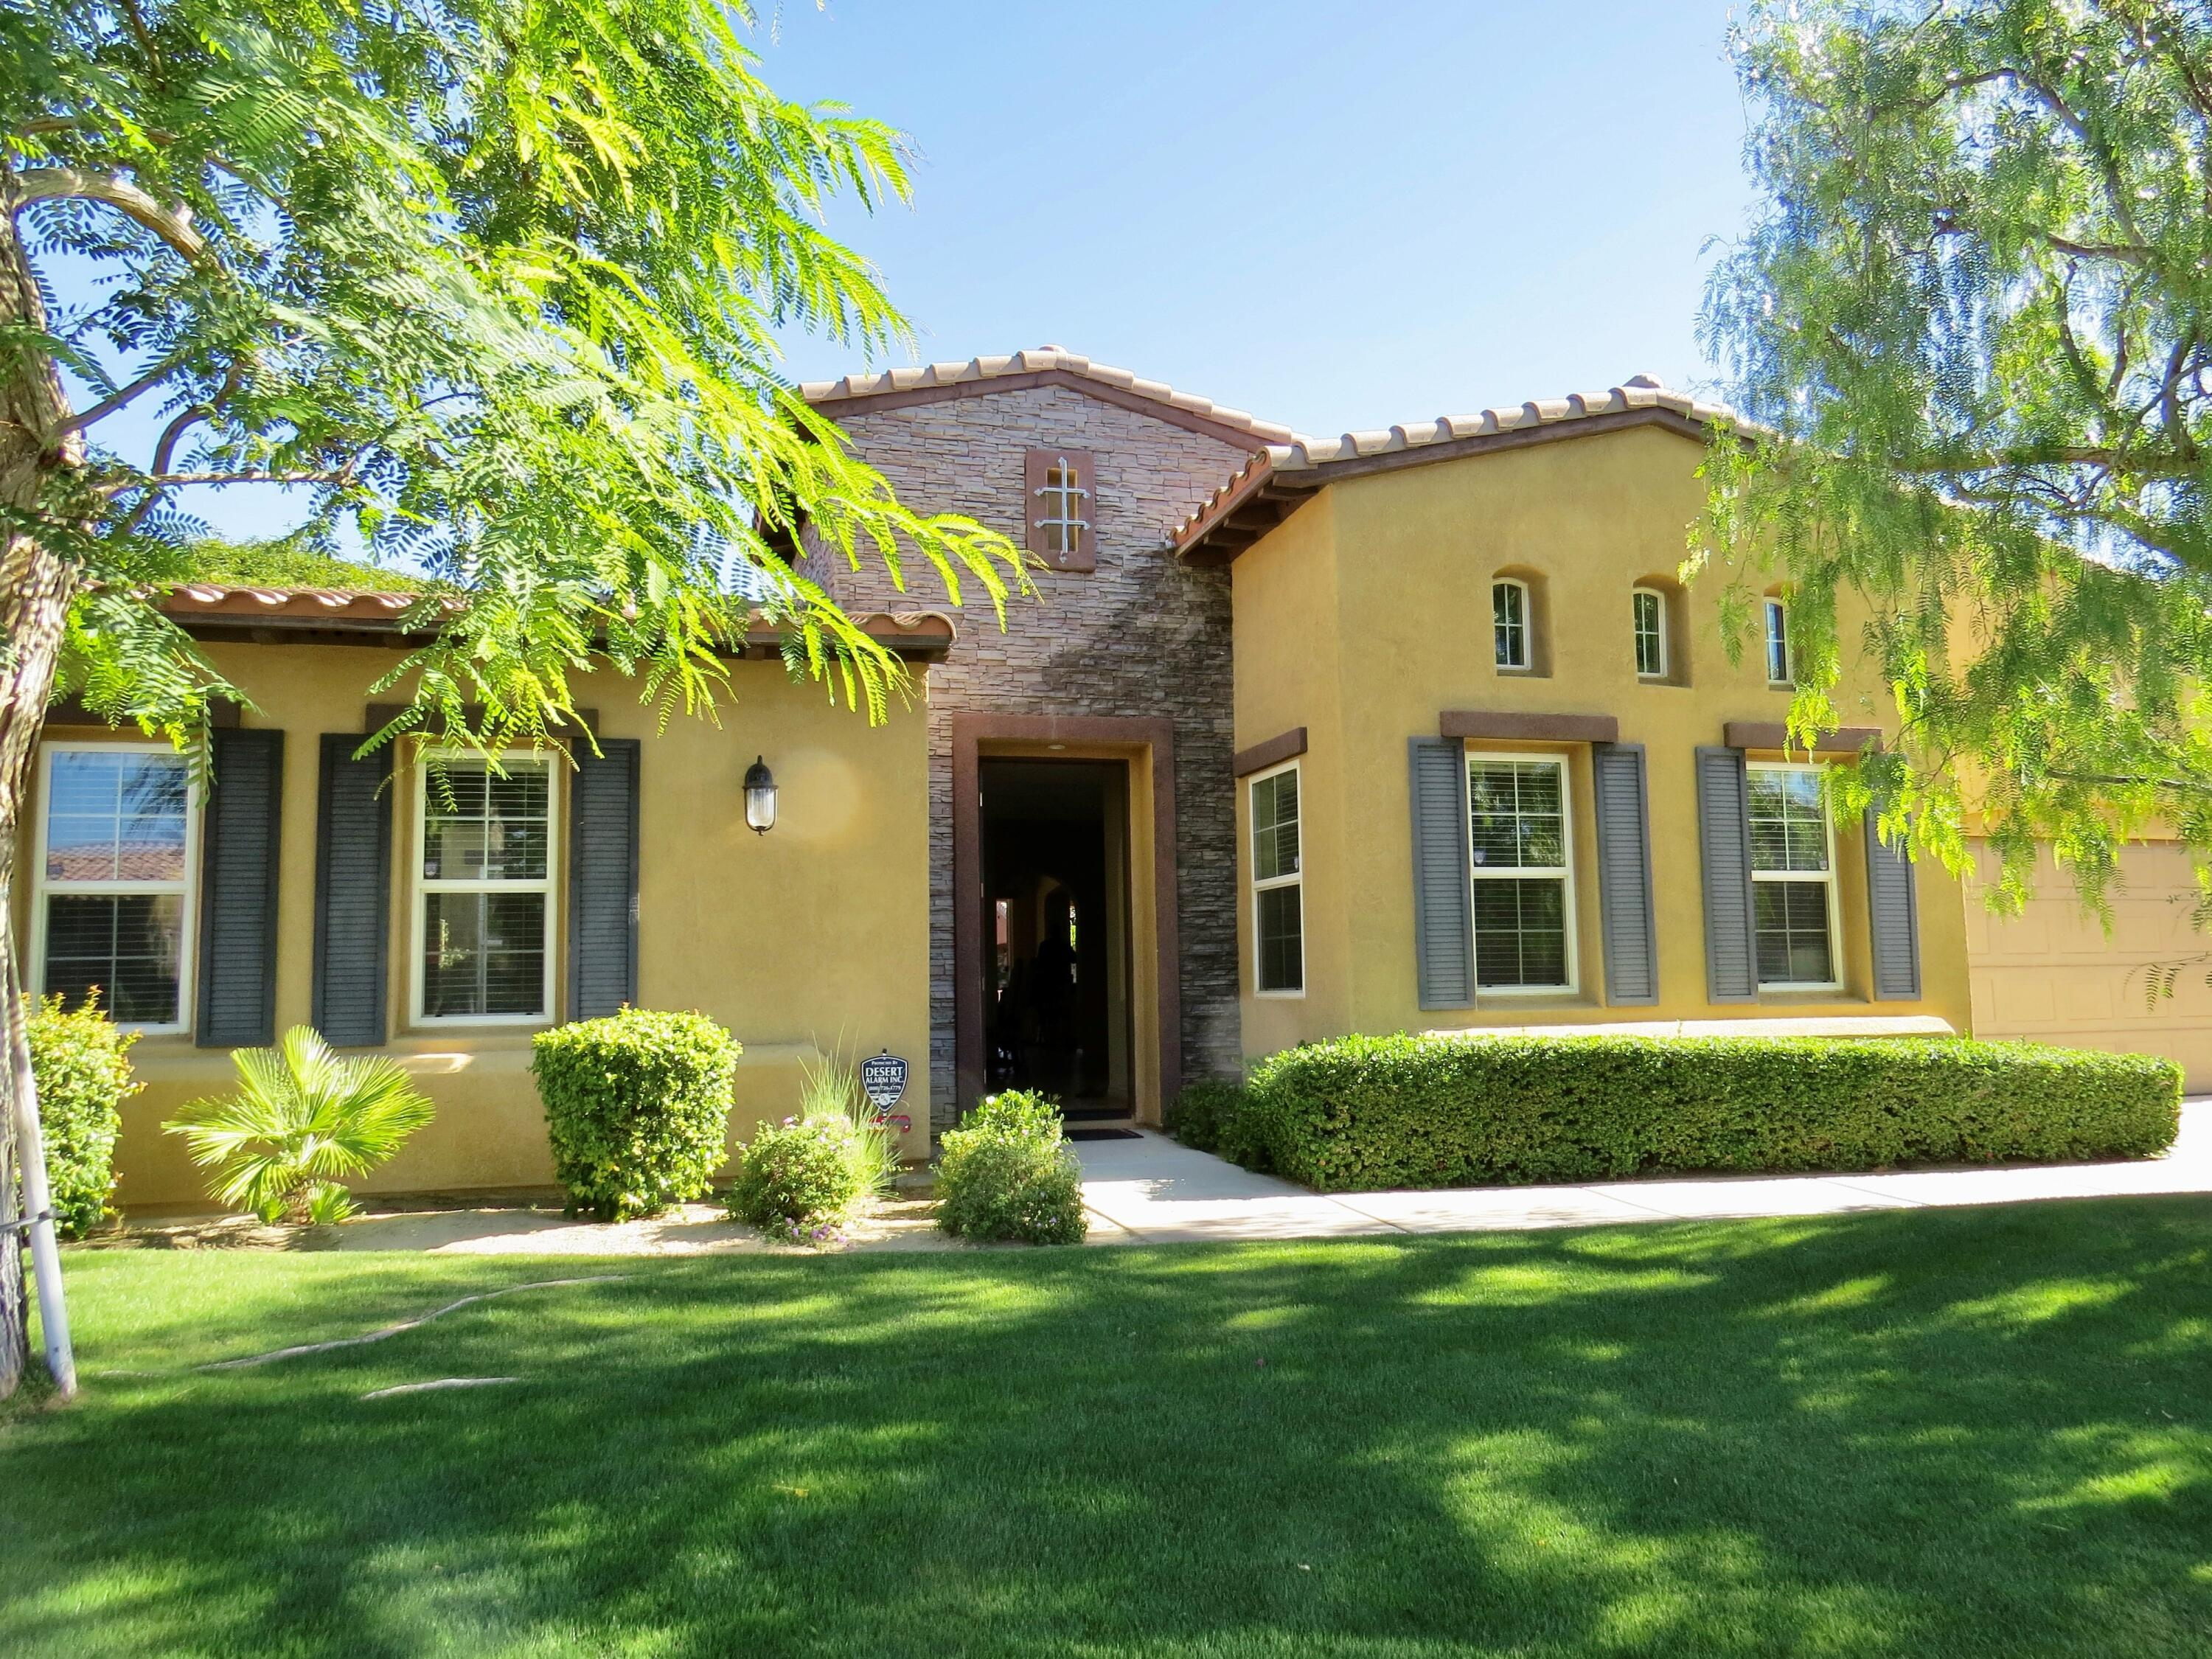 Obvious Pride of Ownership is presented in this lovely Tuscan style home in the highly desirable gated, lake community of Santo Tomas. Situated in a quiet interior cul-de-sac with northwesterly views, this 2307 sf home offers vaulted ceilings, and tile floors throughout. Three en-suite bedrooms with a large Master Suite, and 2 guest bedrooms, one with it's own private courtyard entry. A gourmet kitchen with island, and stainless steel appliances installed last year, opens to the great room with fireplace and backyard views. Rear and side patios re-envisioned with elegant pavers that border the oversized 40 foot swimming pool! Add a raised spa with waterfall, fire pit and cool, covered patio spaces, one has a perfectly designed backyard for all to gather or for one to simply swim laps and relax. Centrally located in the Valley, Santo Tomas offers a small community of 152 homes, a 9 acre recreational lake, 5 parks and waterfalls. Low HOA's which INCLUDE membership to the fitness and social amenities of Mission Hills Country Club (just across the street). This is an added bonus to a truly special home! Furnishings and artwork available under a separate contract.